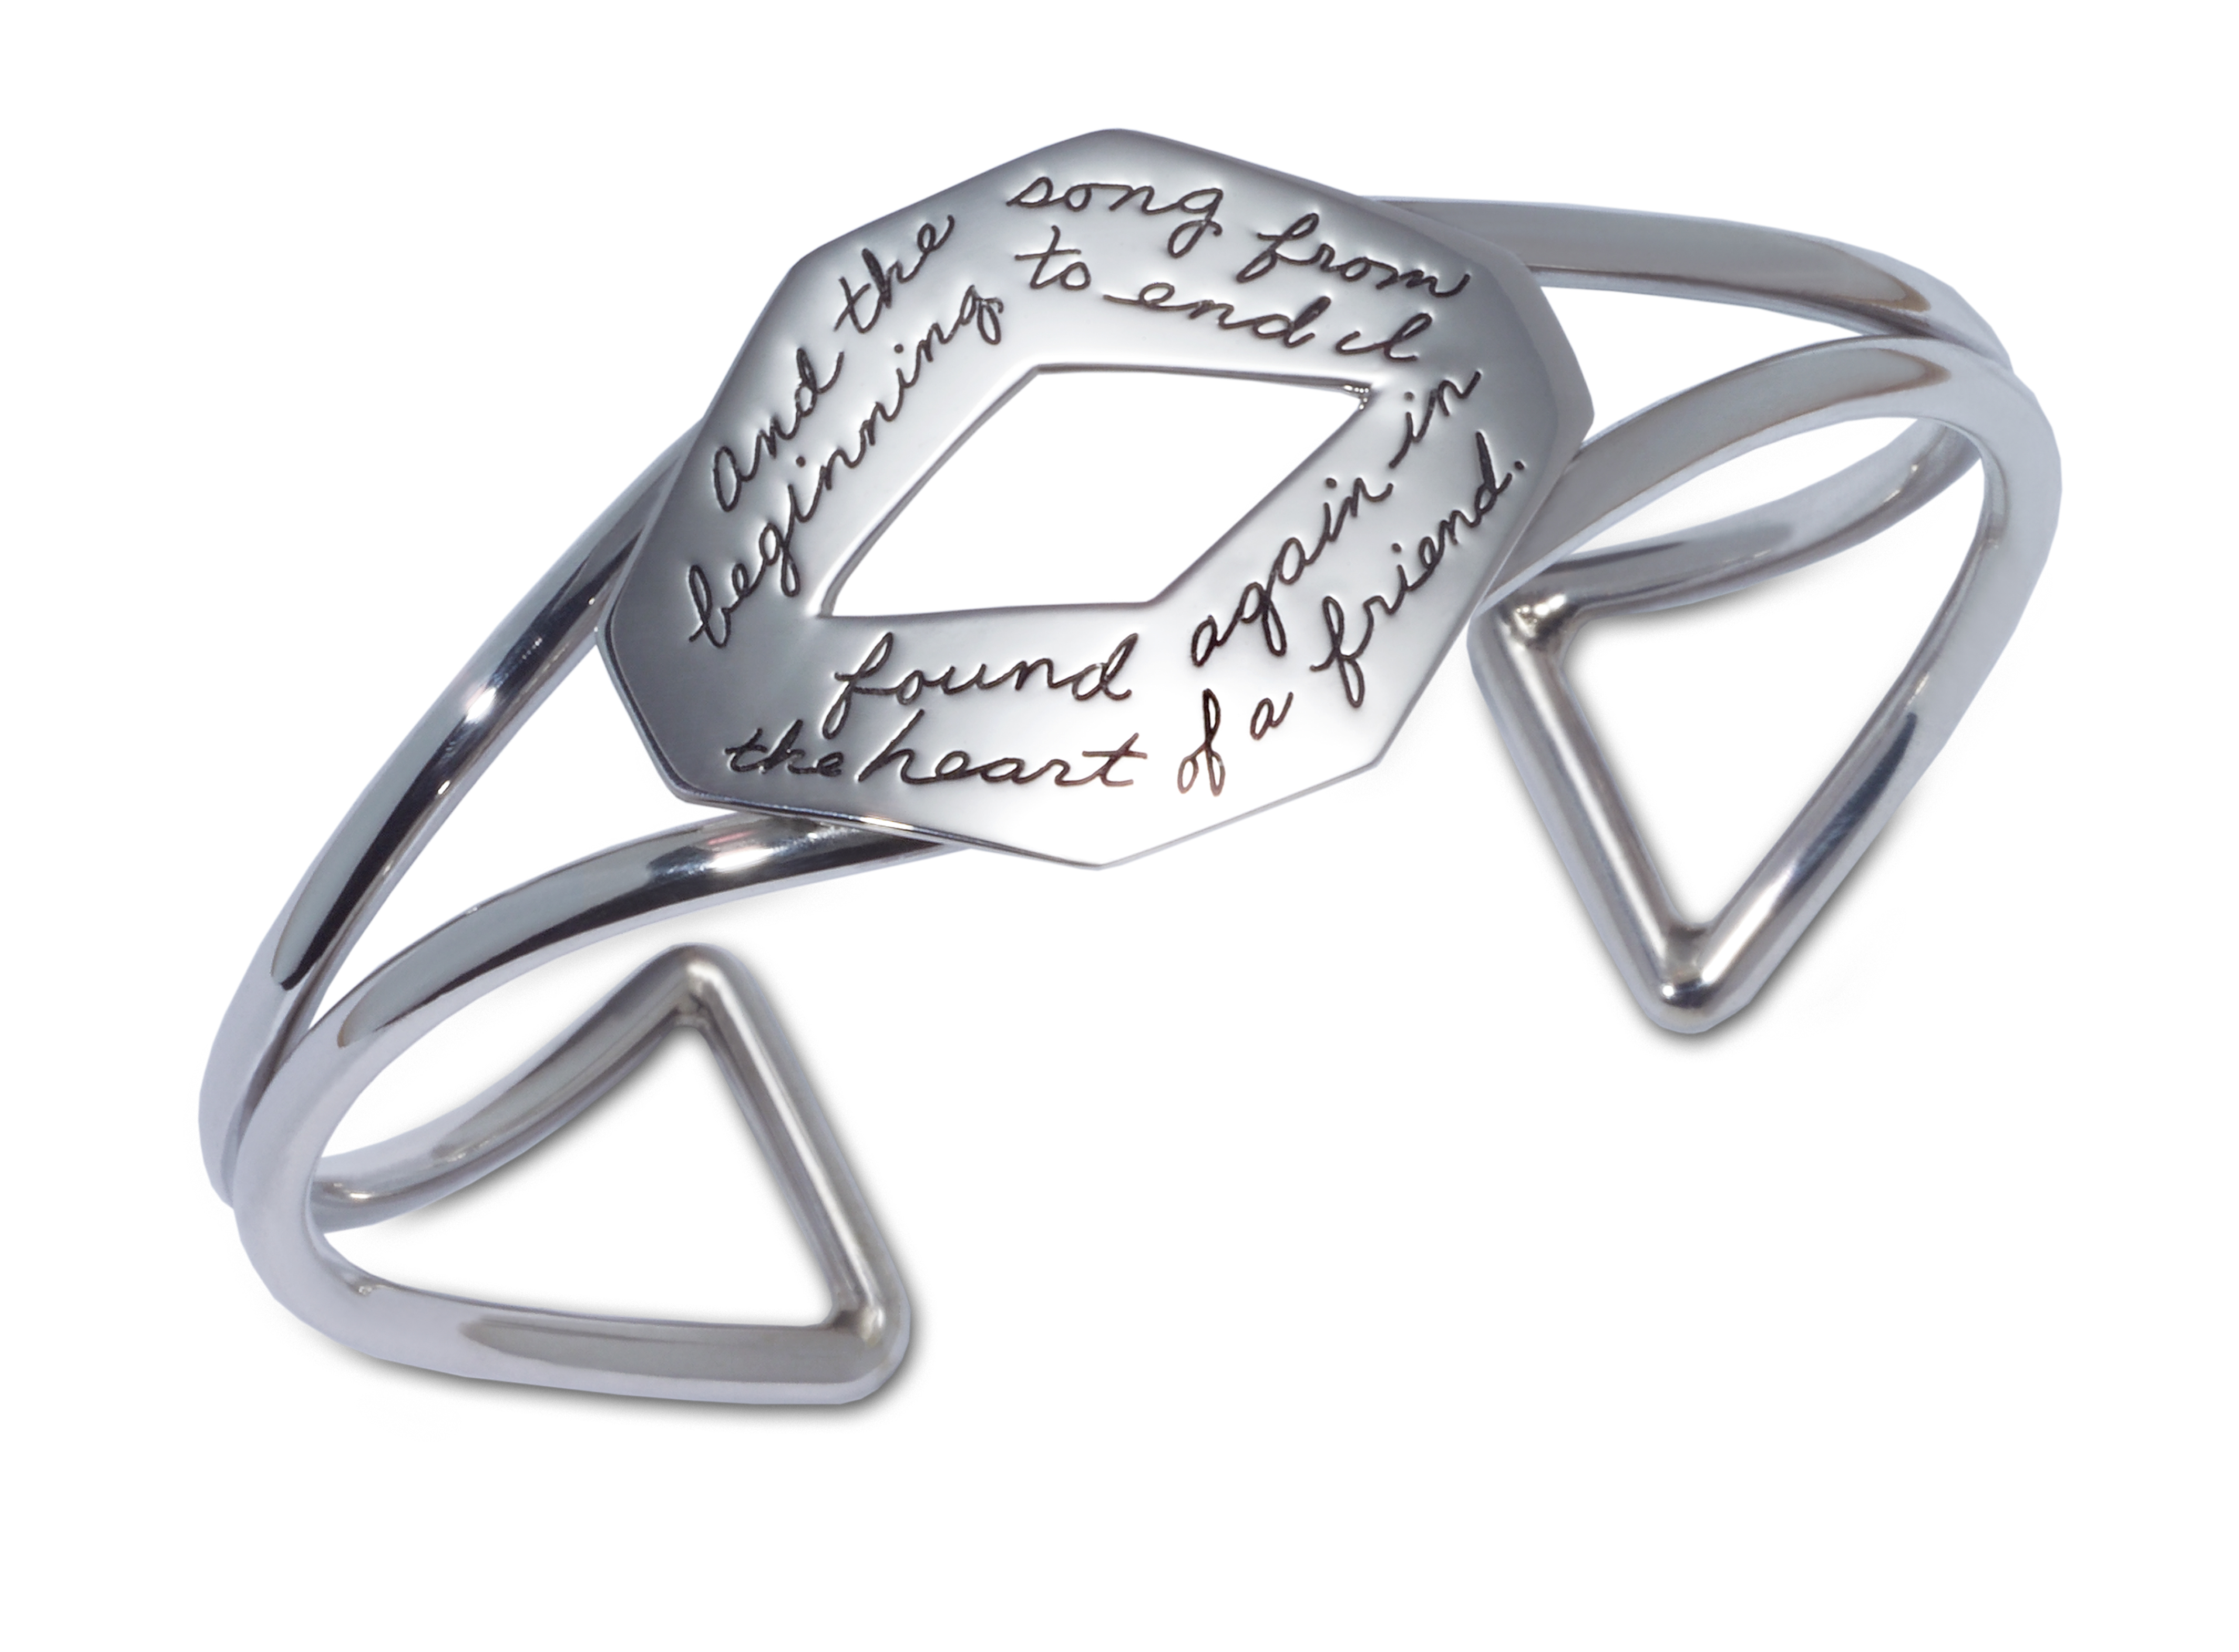 Large sterling elongated plaque with Longfellow's poetic quotation connected by silver wires completing the bracelet  - And the song from beginning to end, I found again in the heart of a friend.